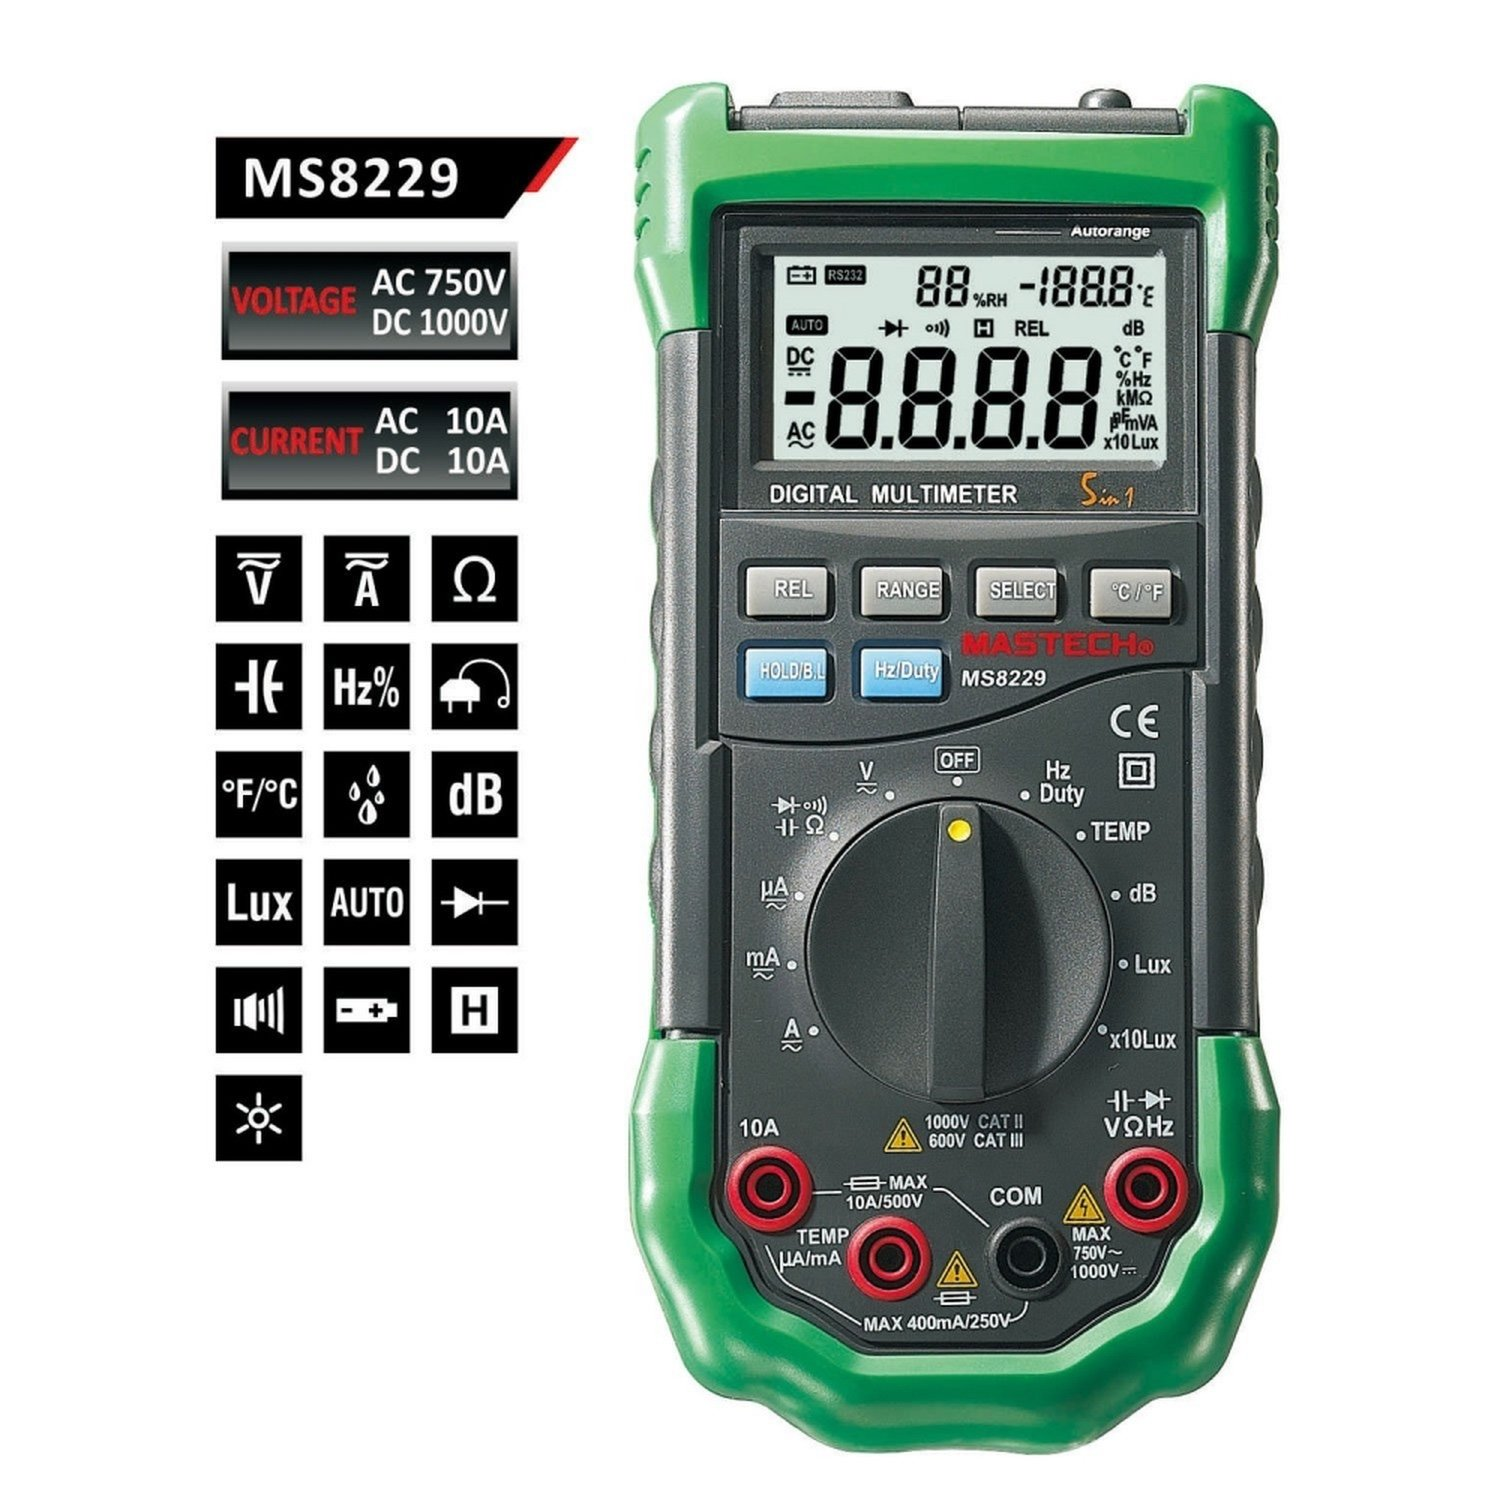 MASTECH MS8229 5 in 1 3999 Multimeter tester Lux Humidity Sound Poke backlight